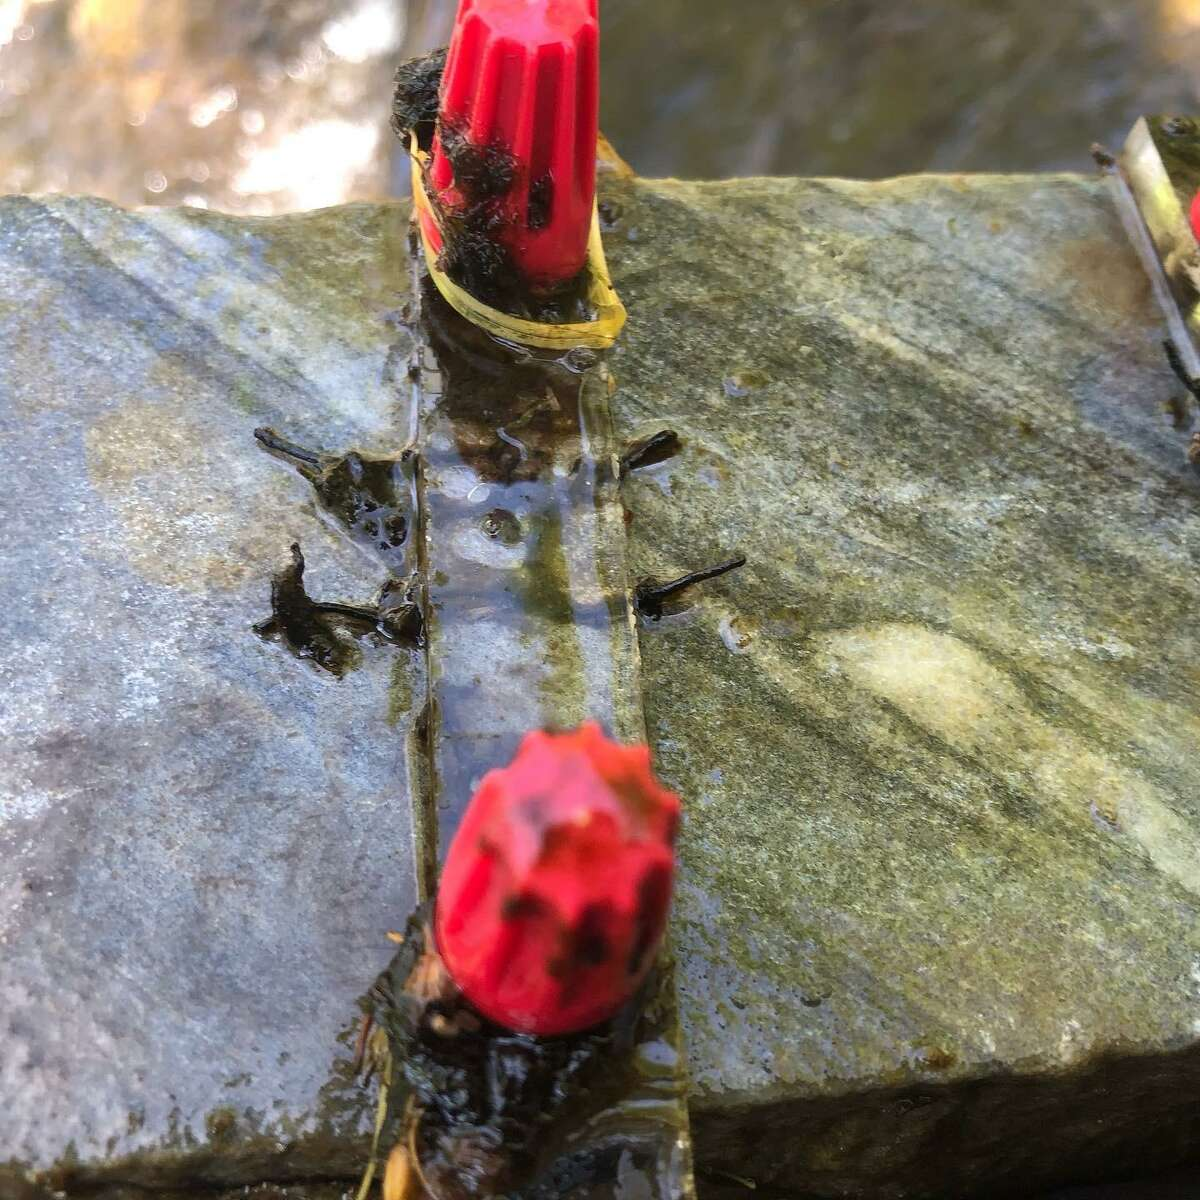 The red bolts that attach a piece of plexiglass to a rock with hornleaf riverweed on it can be seen through the water of the Norwalk River.